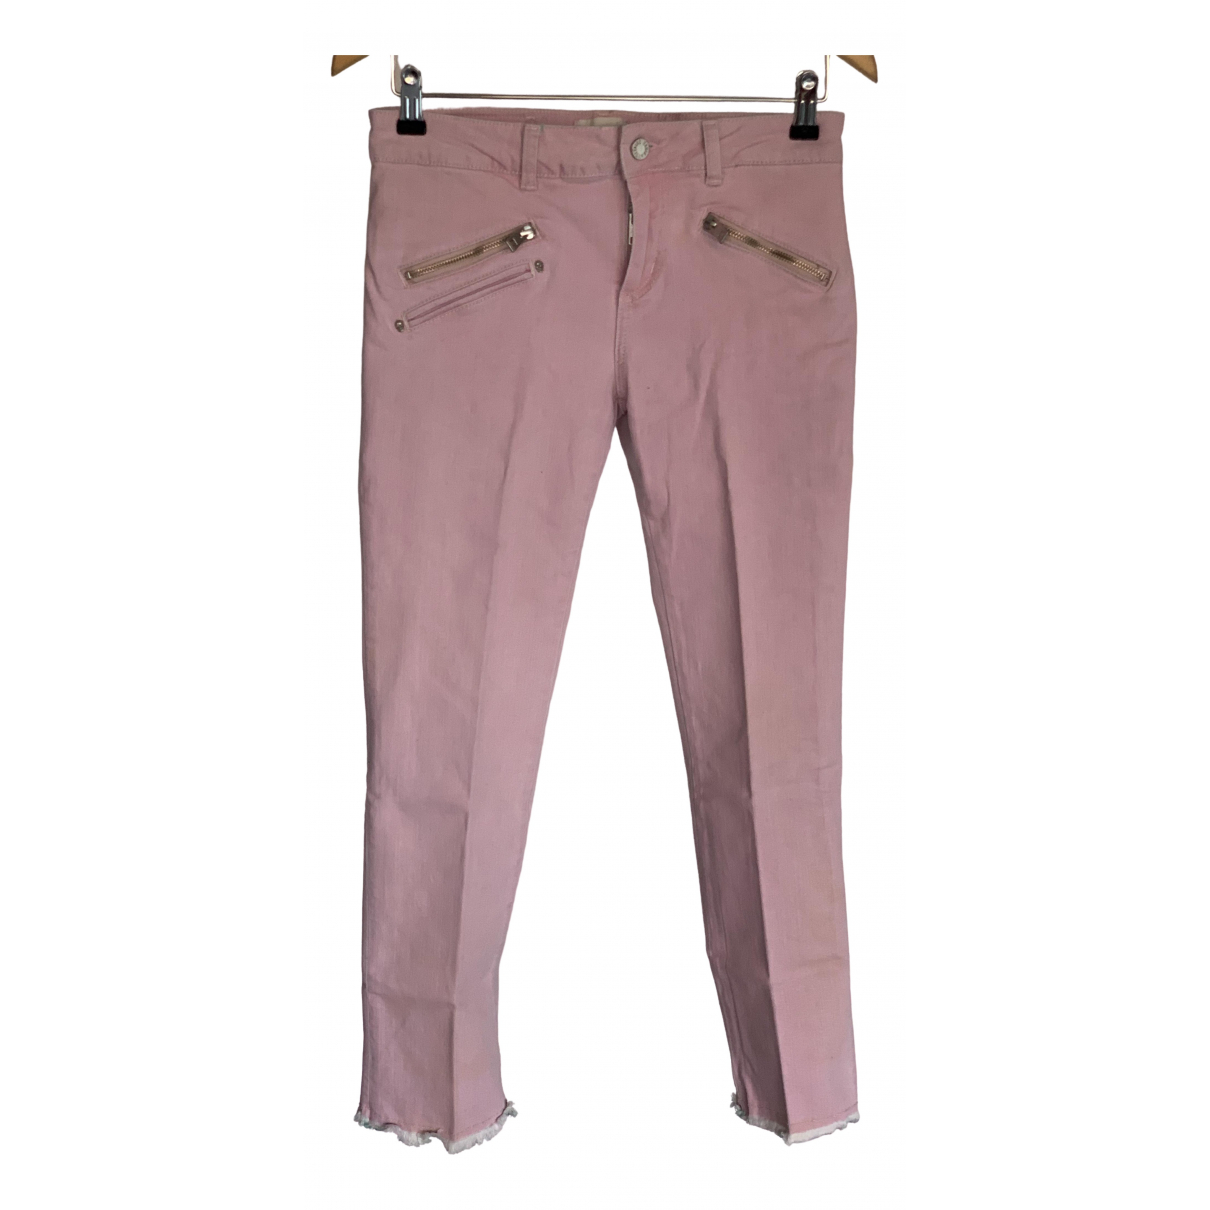 Zadig & Voltaire \N Pink Cotton - elasthane Jeans for Women 25 US